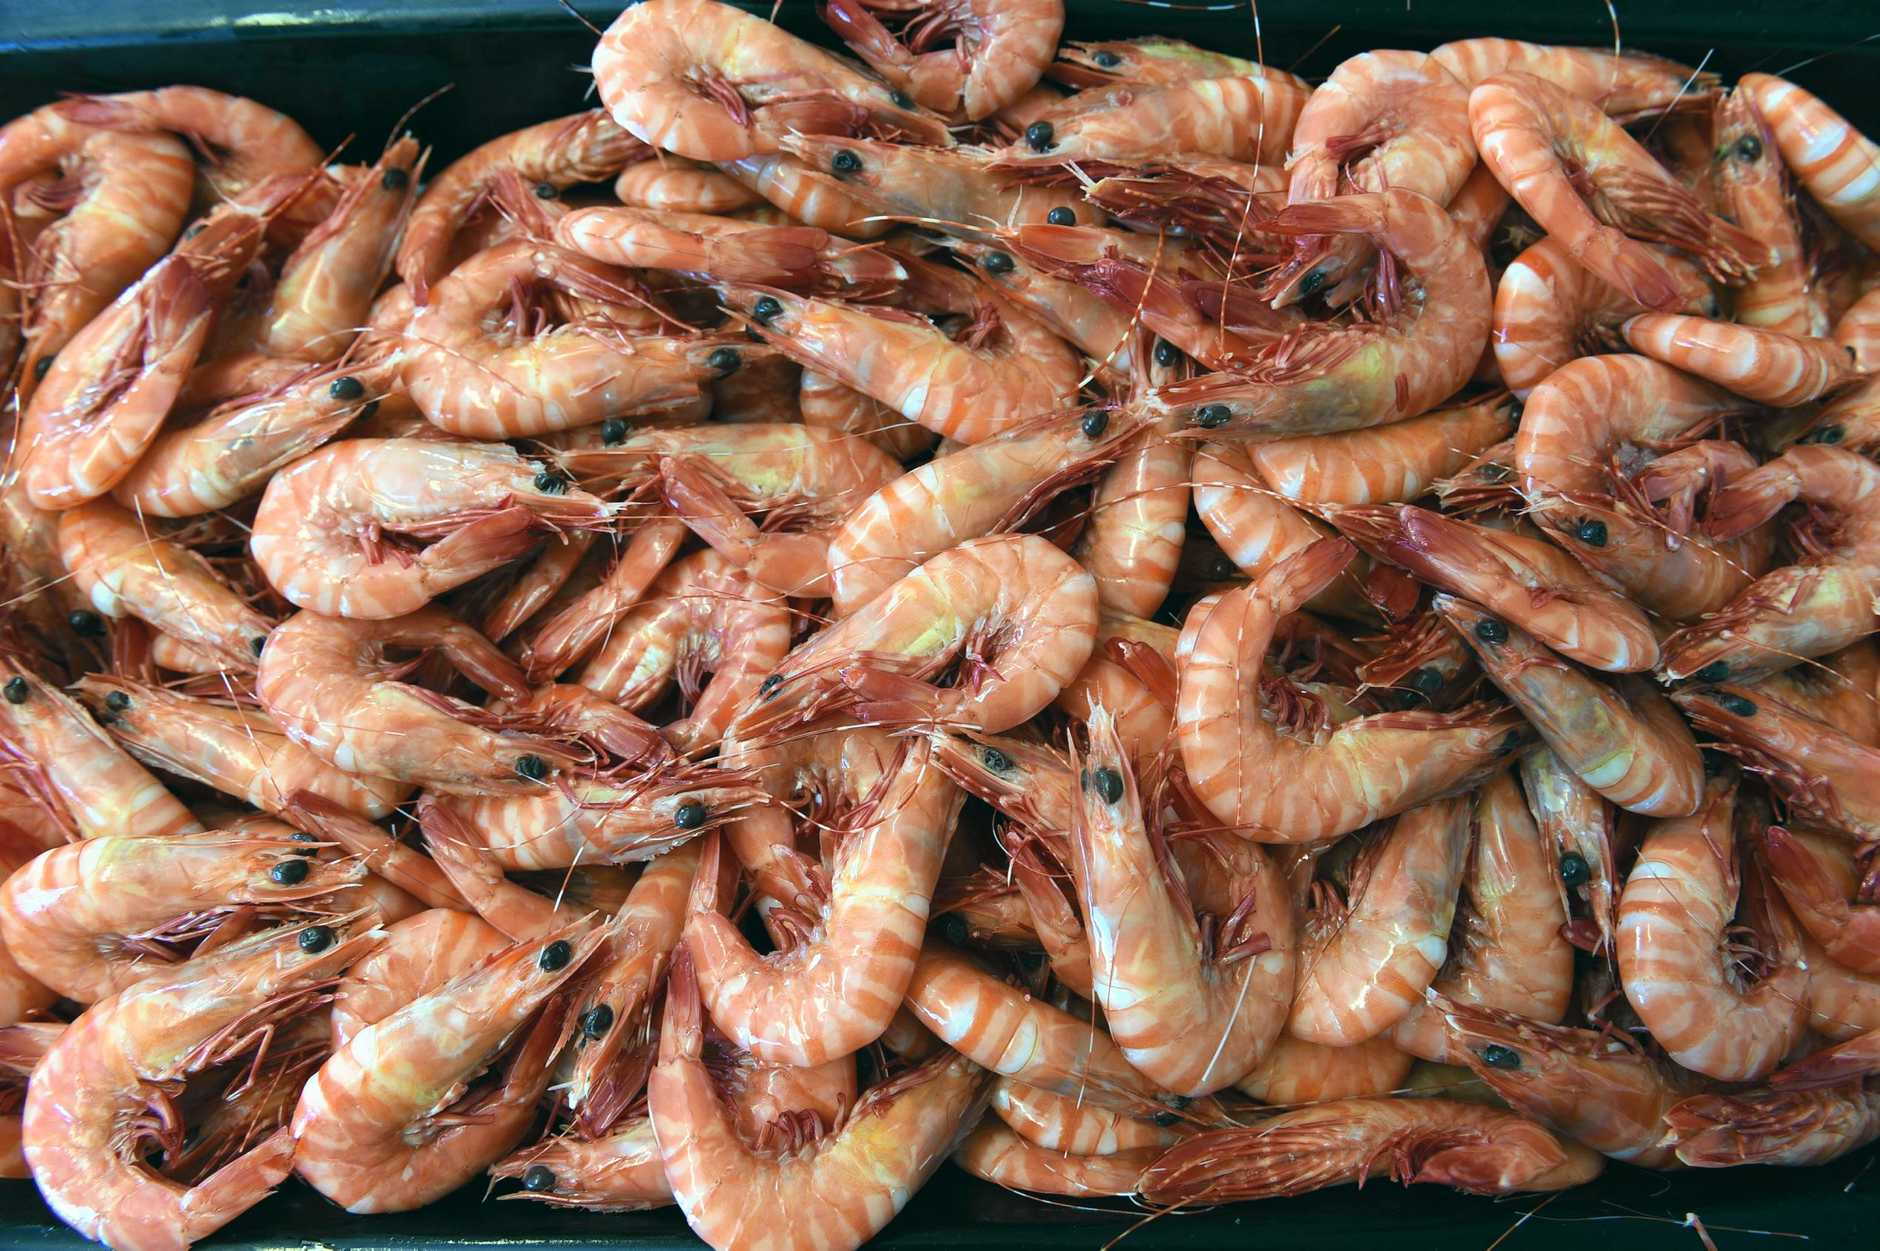 Dan Greenhalgh from Urangan Fisheries with a tray of fresh prawns.